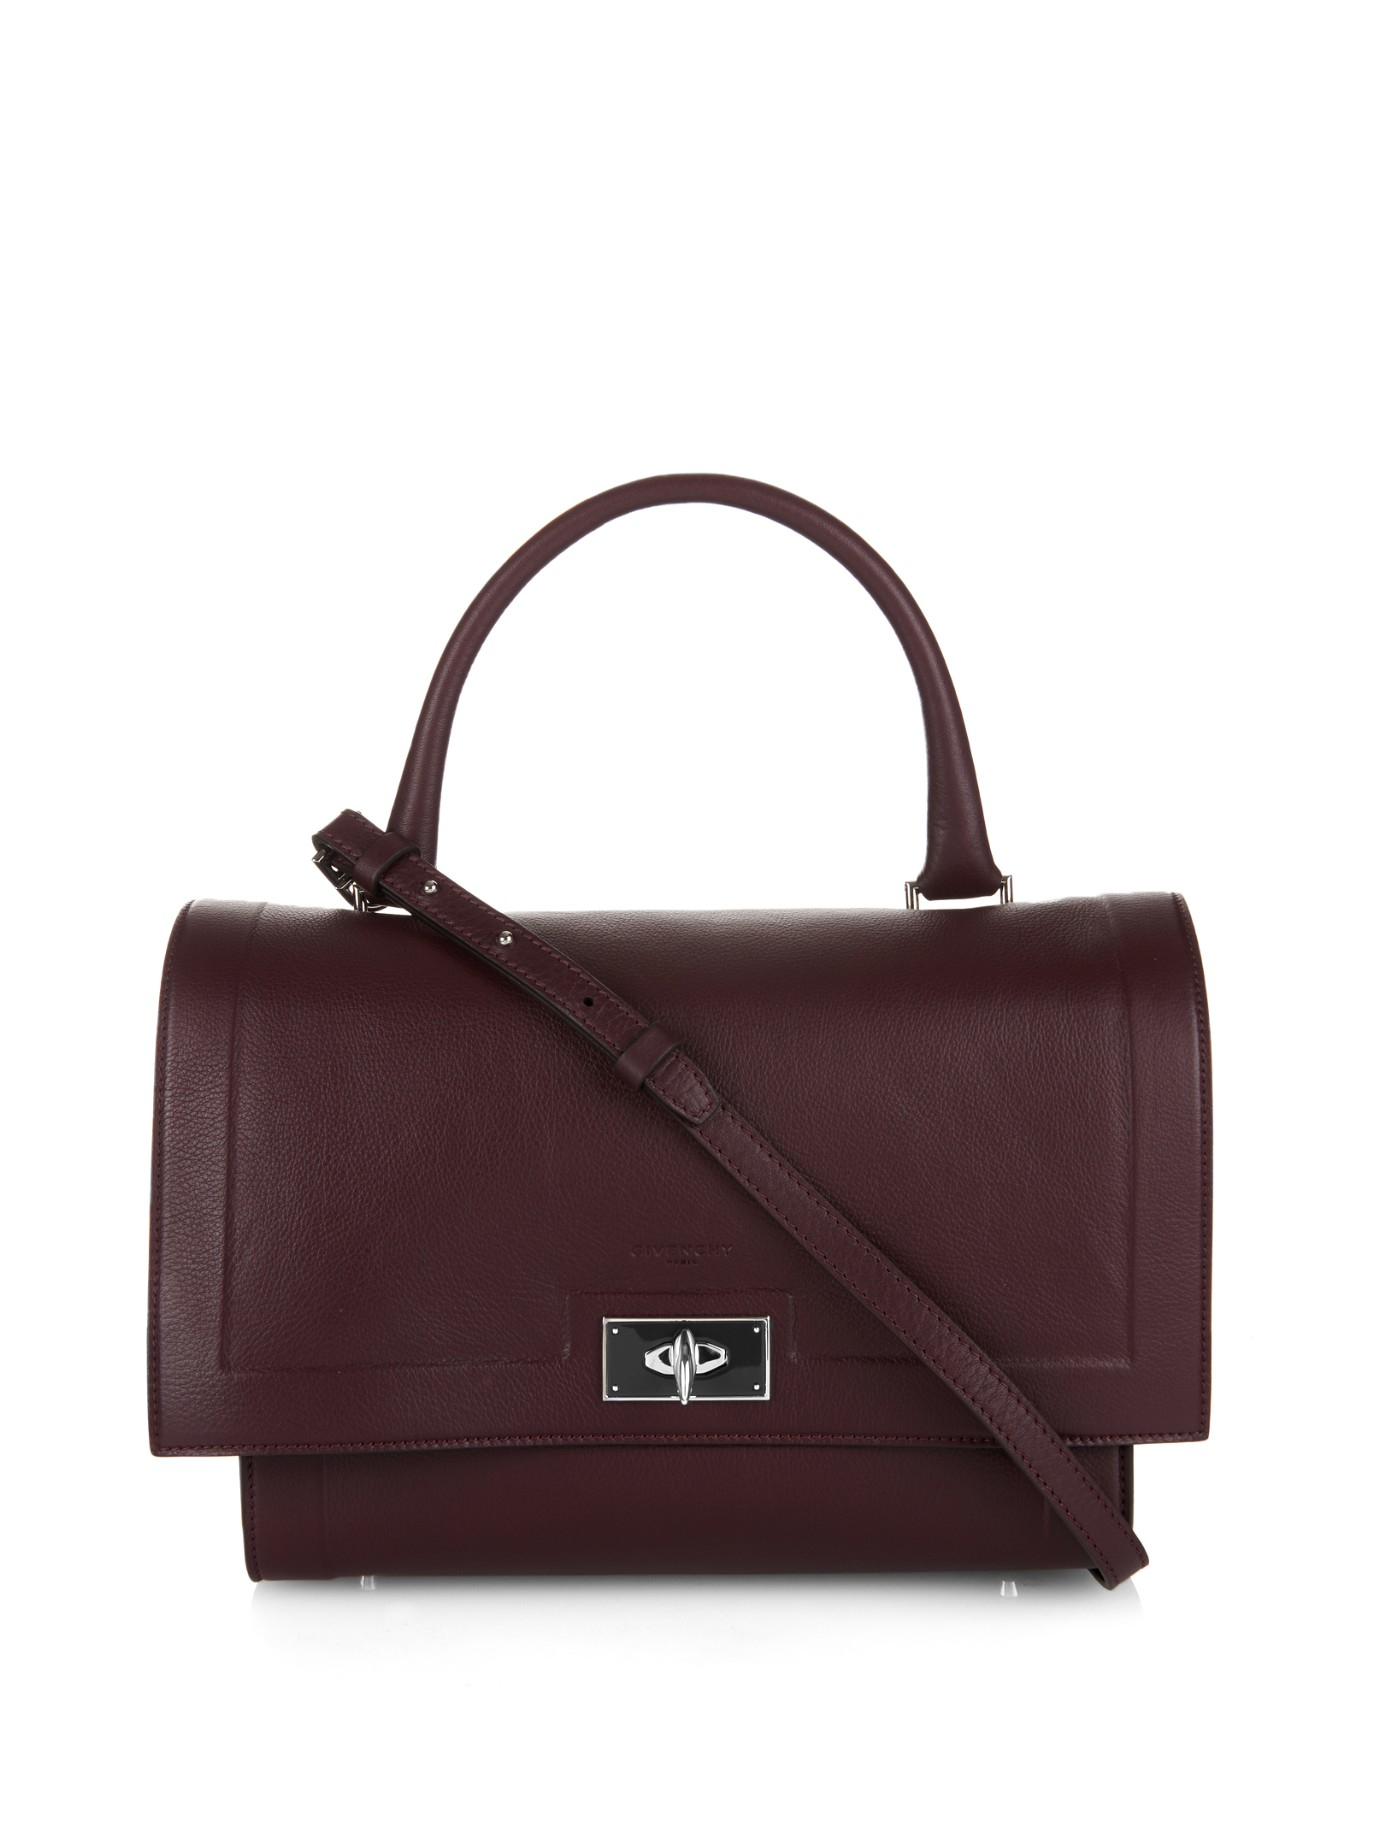 ca844605dd6 Givenchy Shark Small Leather Tote in Purple - Lyst